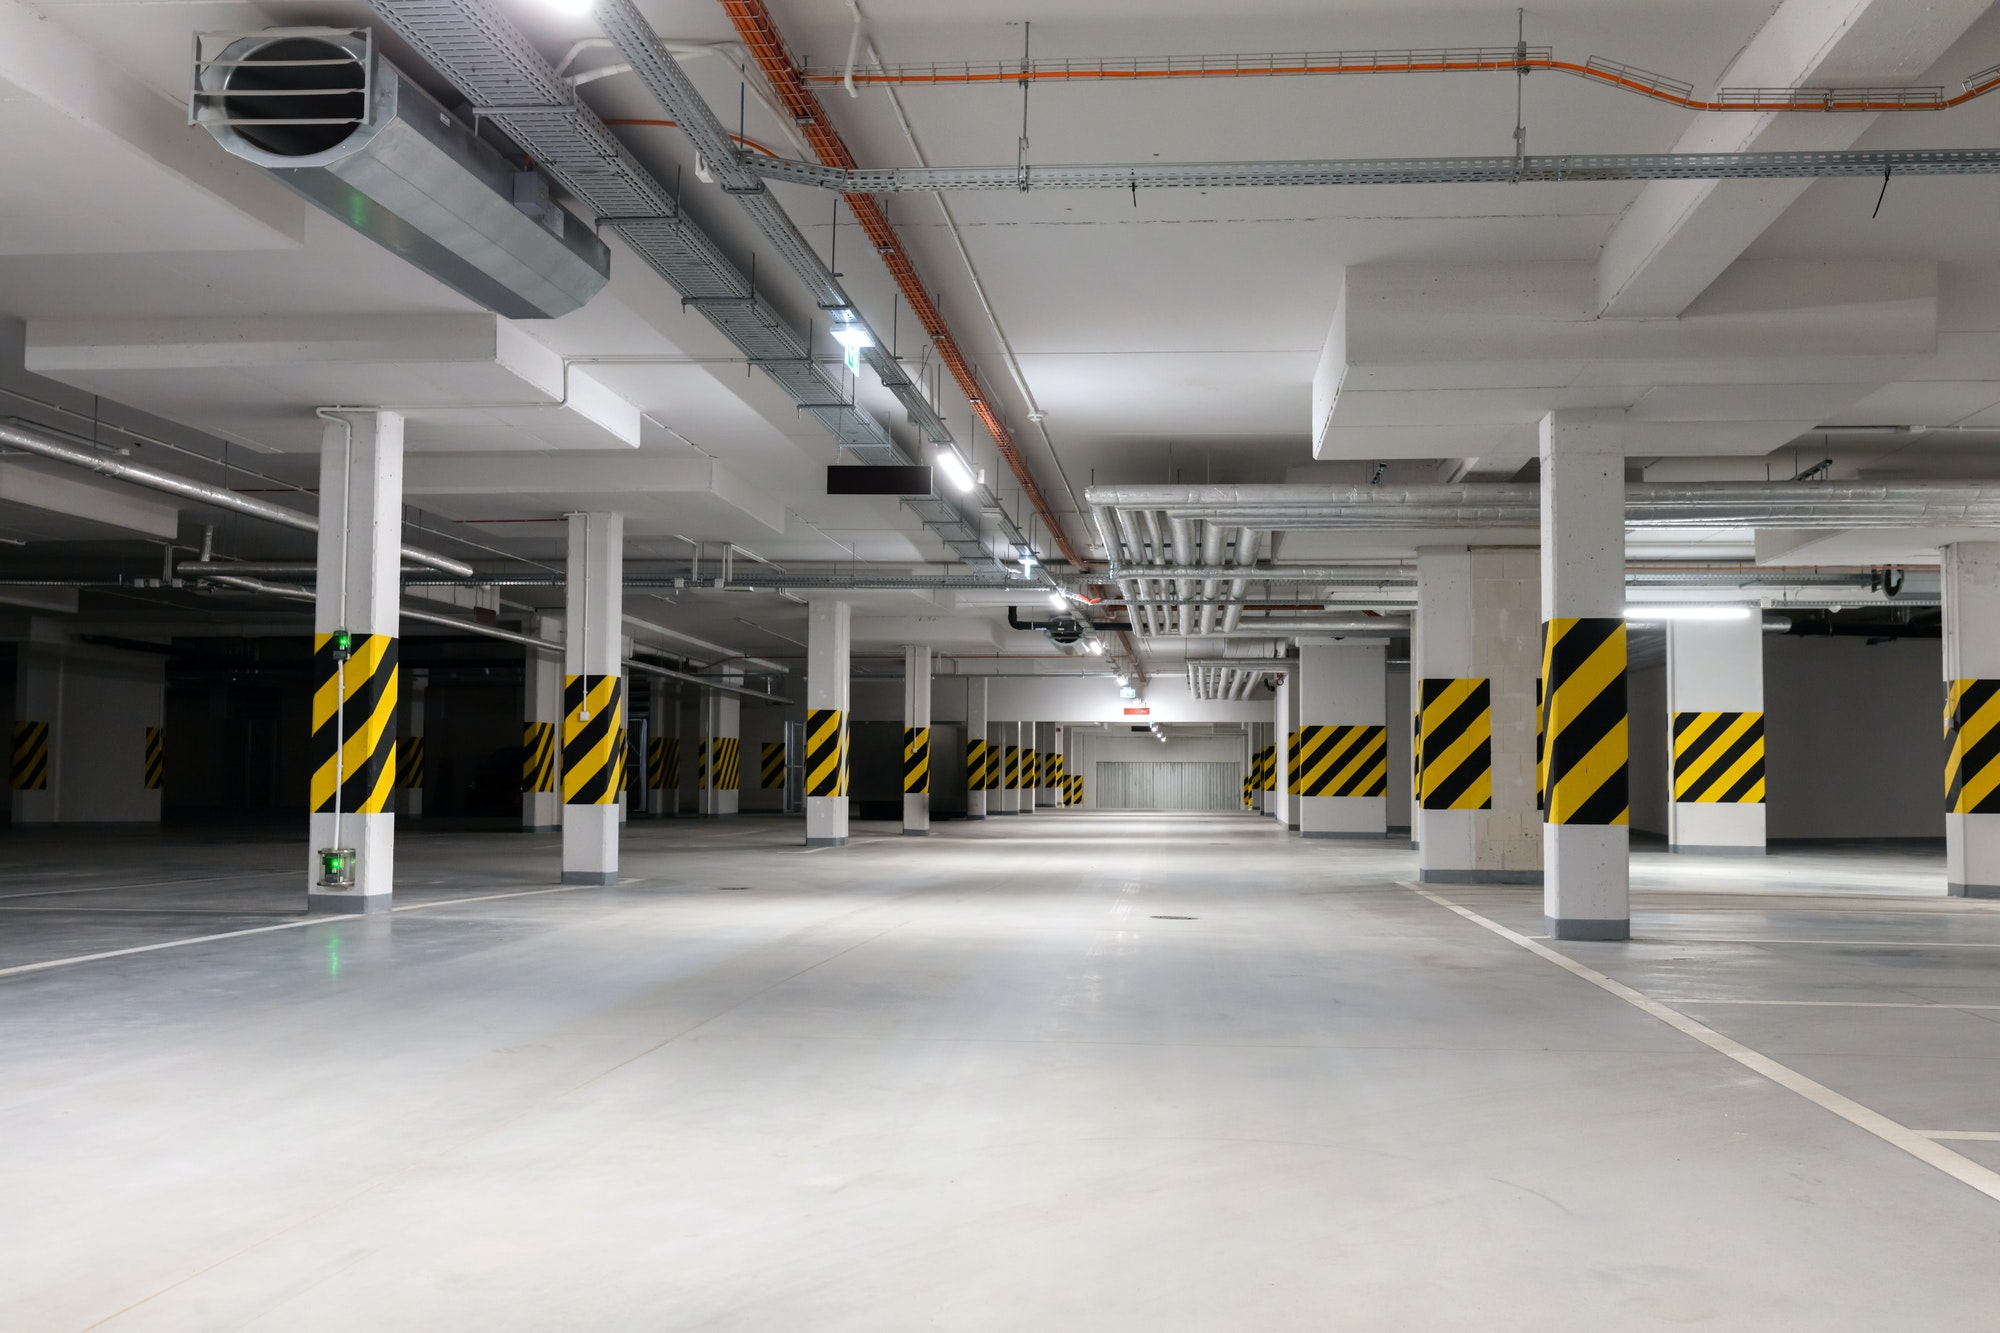 Underground empty parking garage. Modern urban space